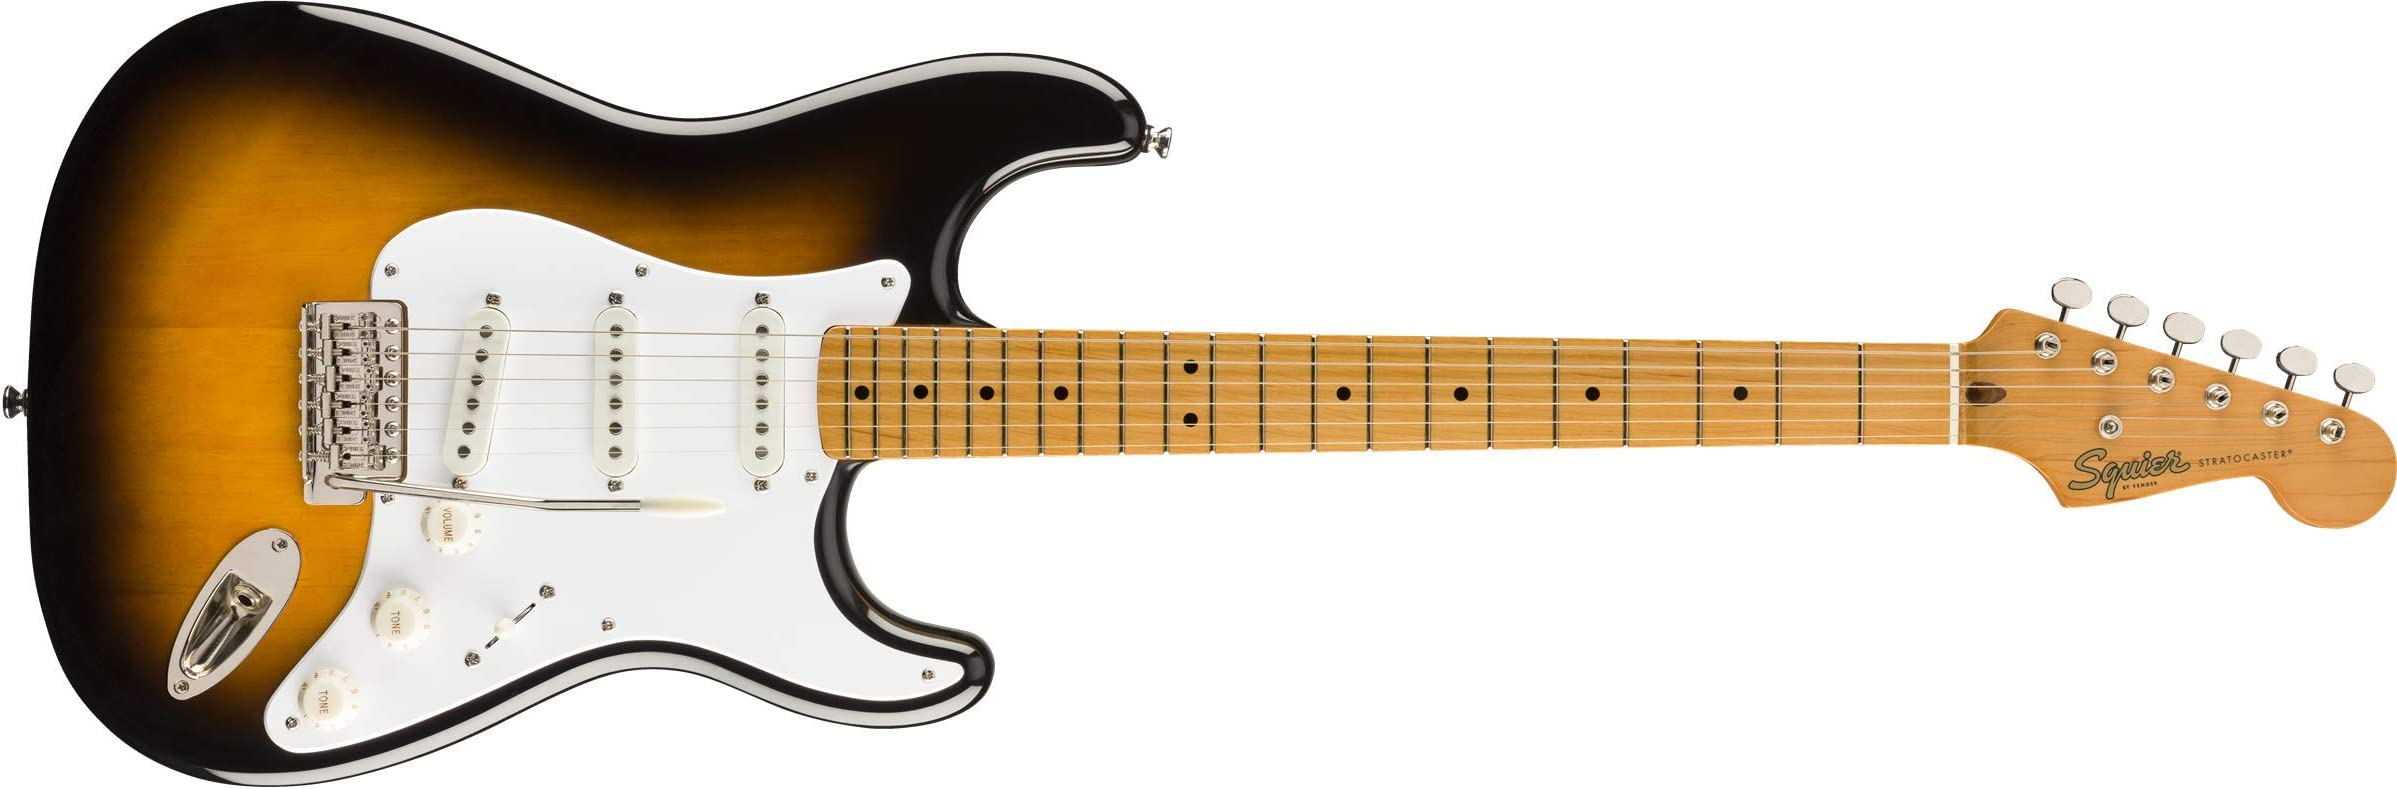 Squier Classic Vibe 50's Stratocaster - Maple Fingerboard - 2-Color Sunburst